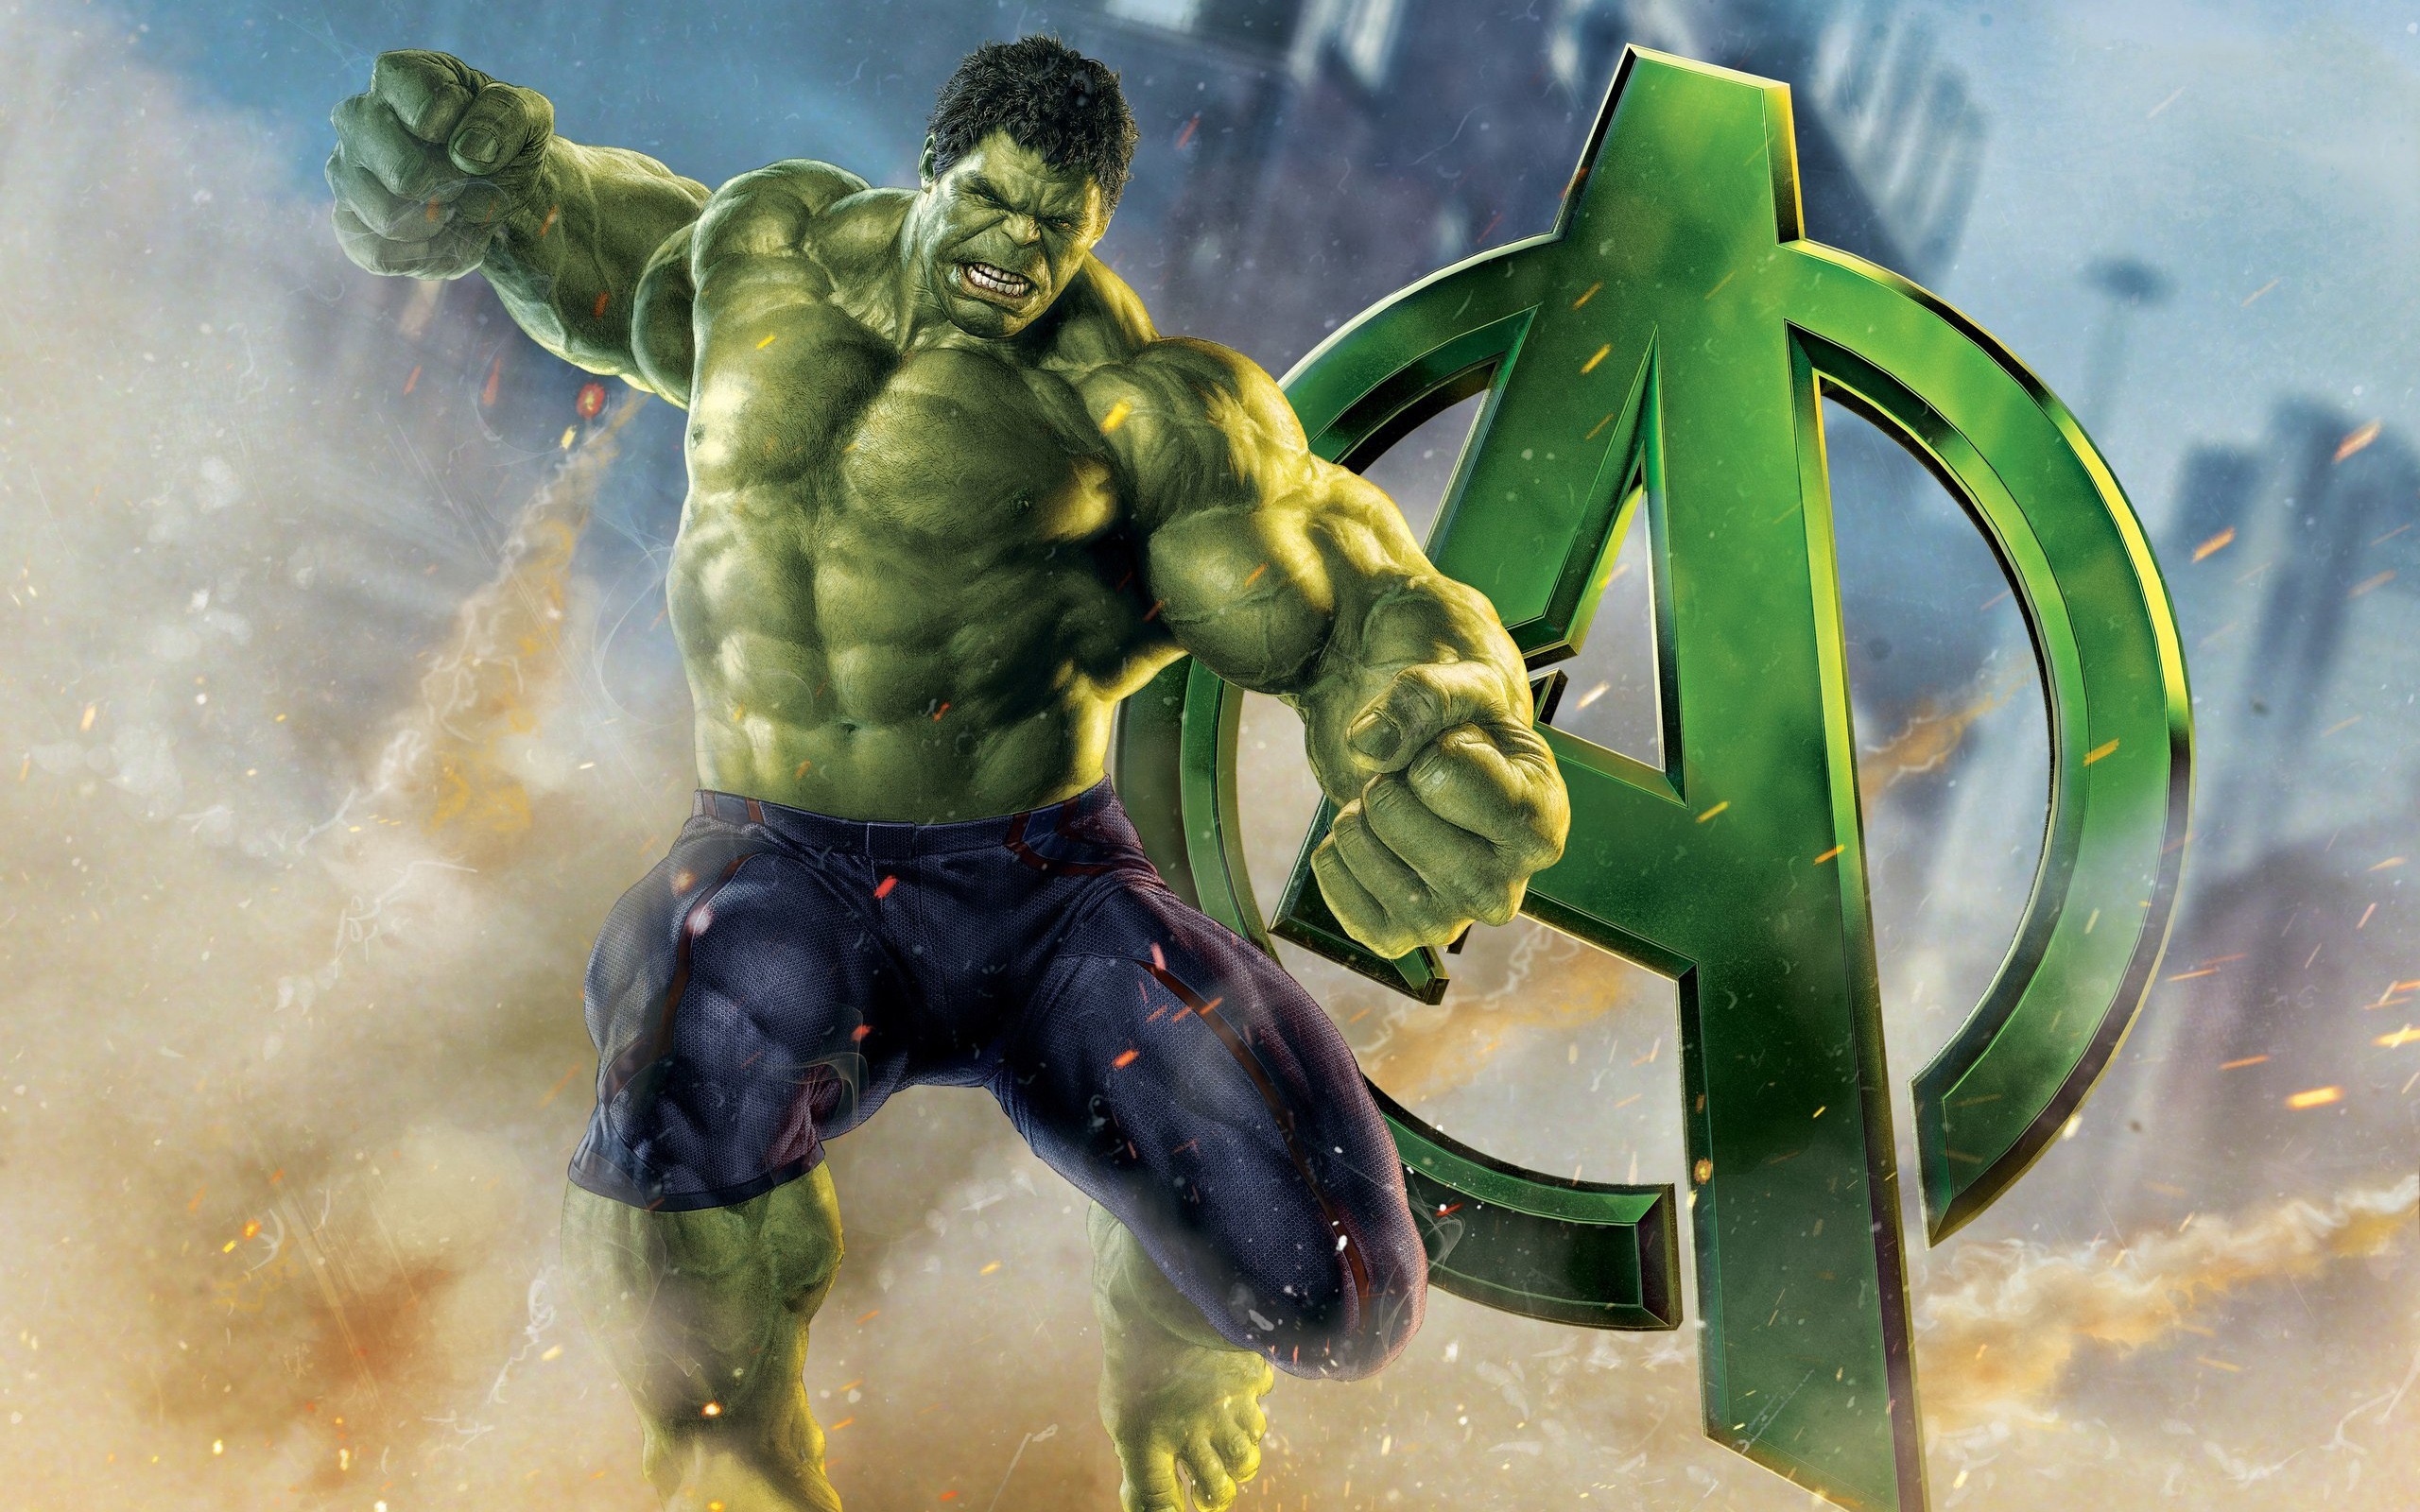 480x854 avengers hulk android one hd 4k wallpapers, images